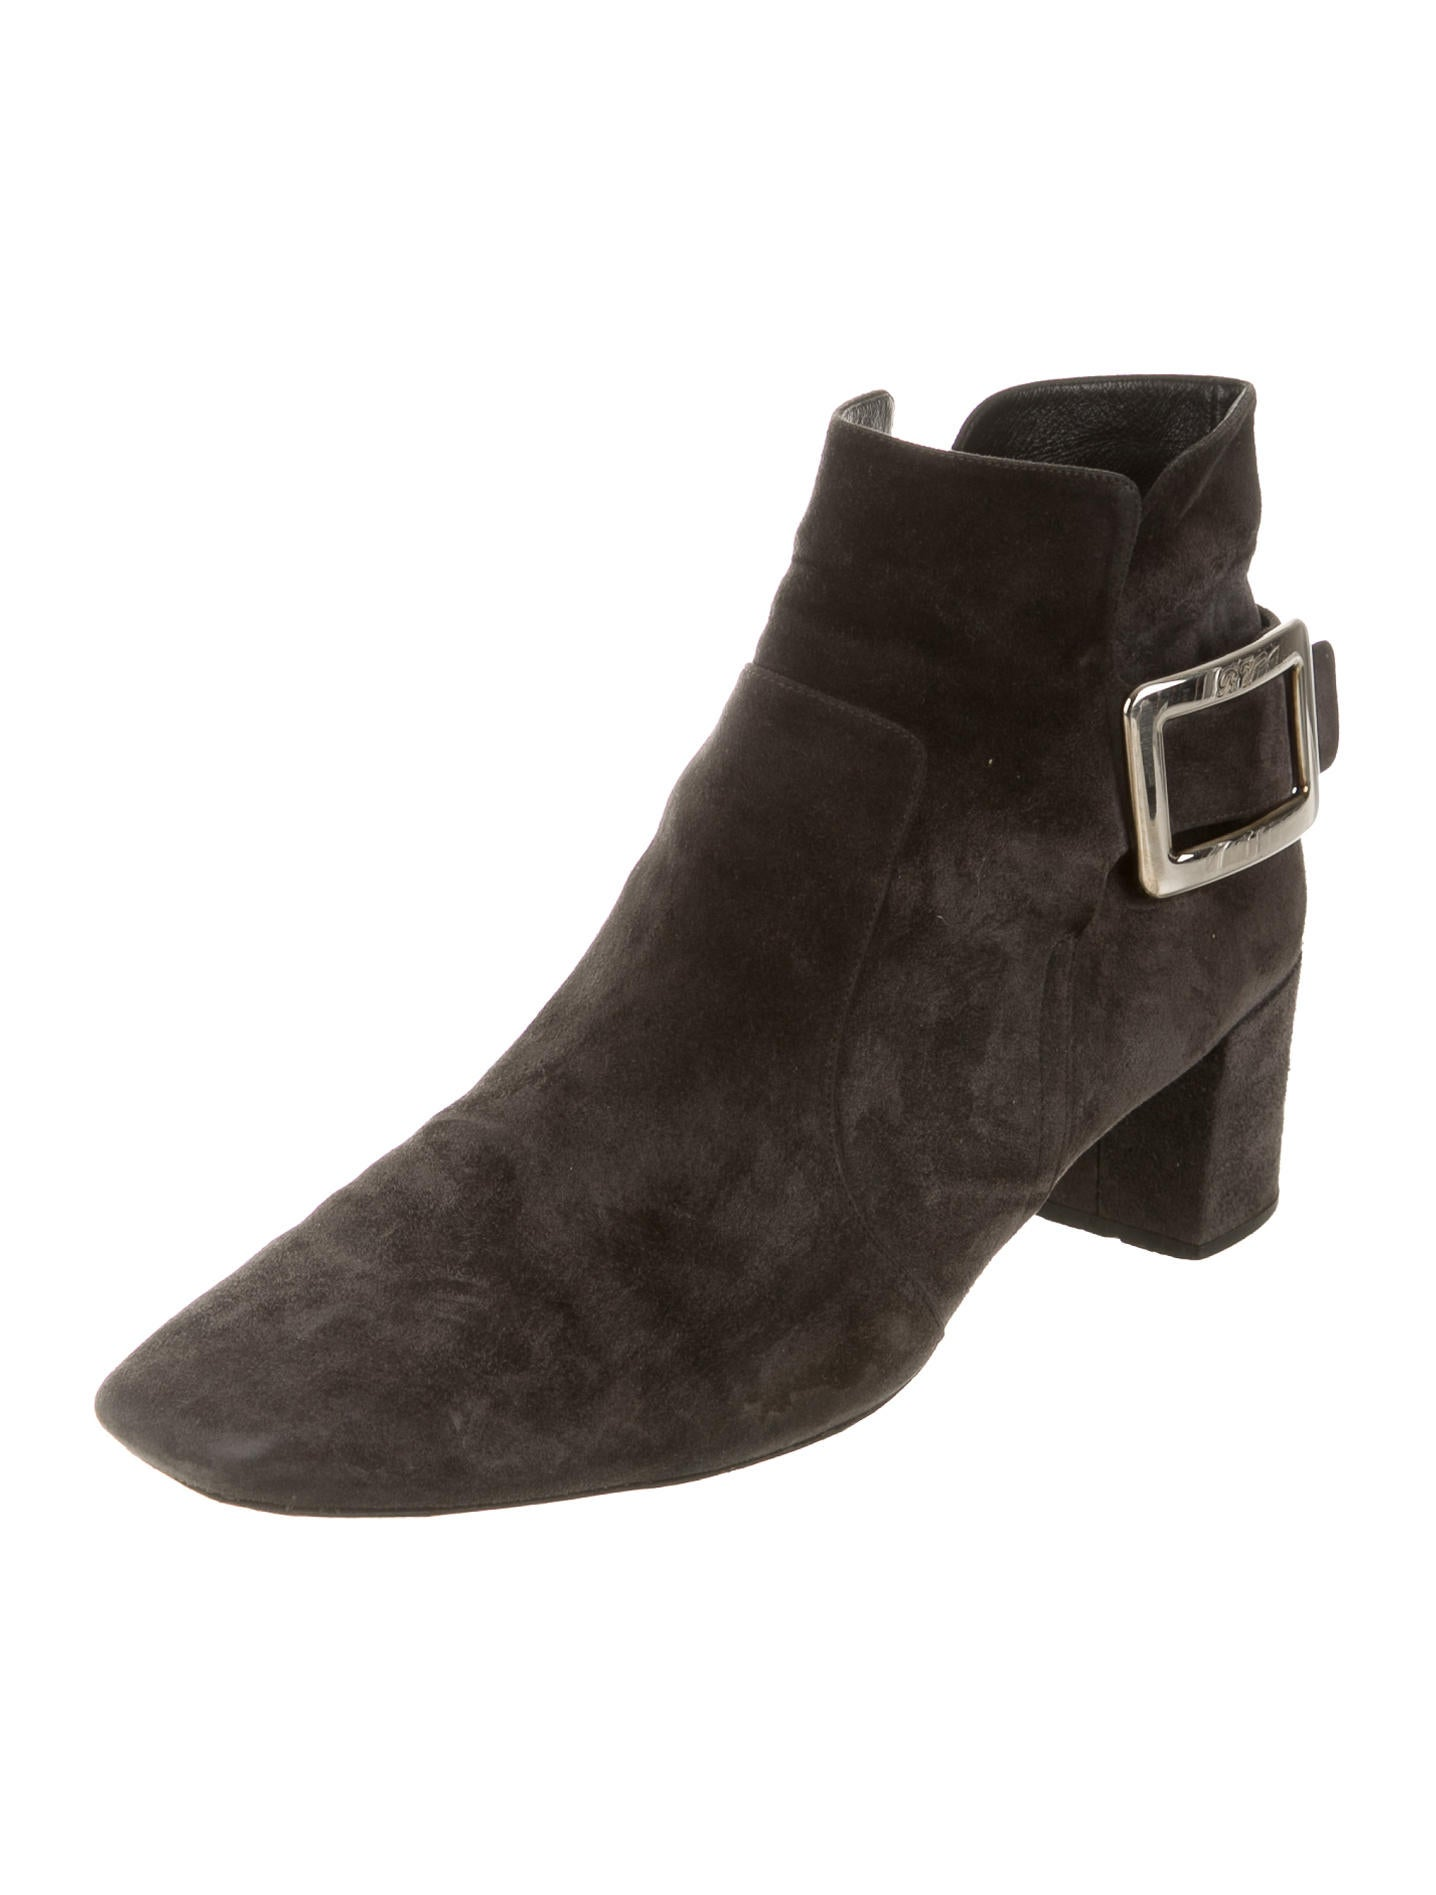 roger vivier suede ankle boots shoes rov23539 the